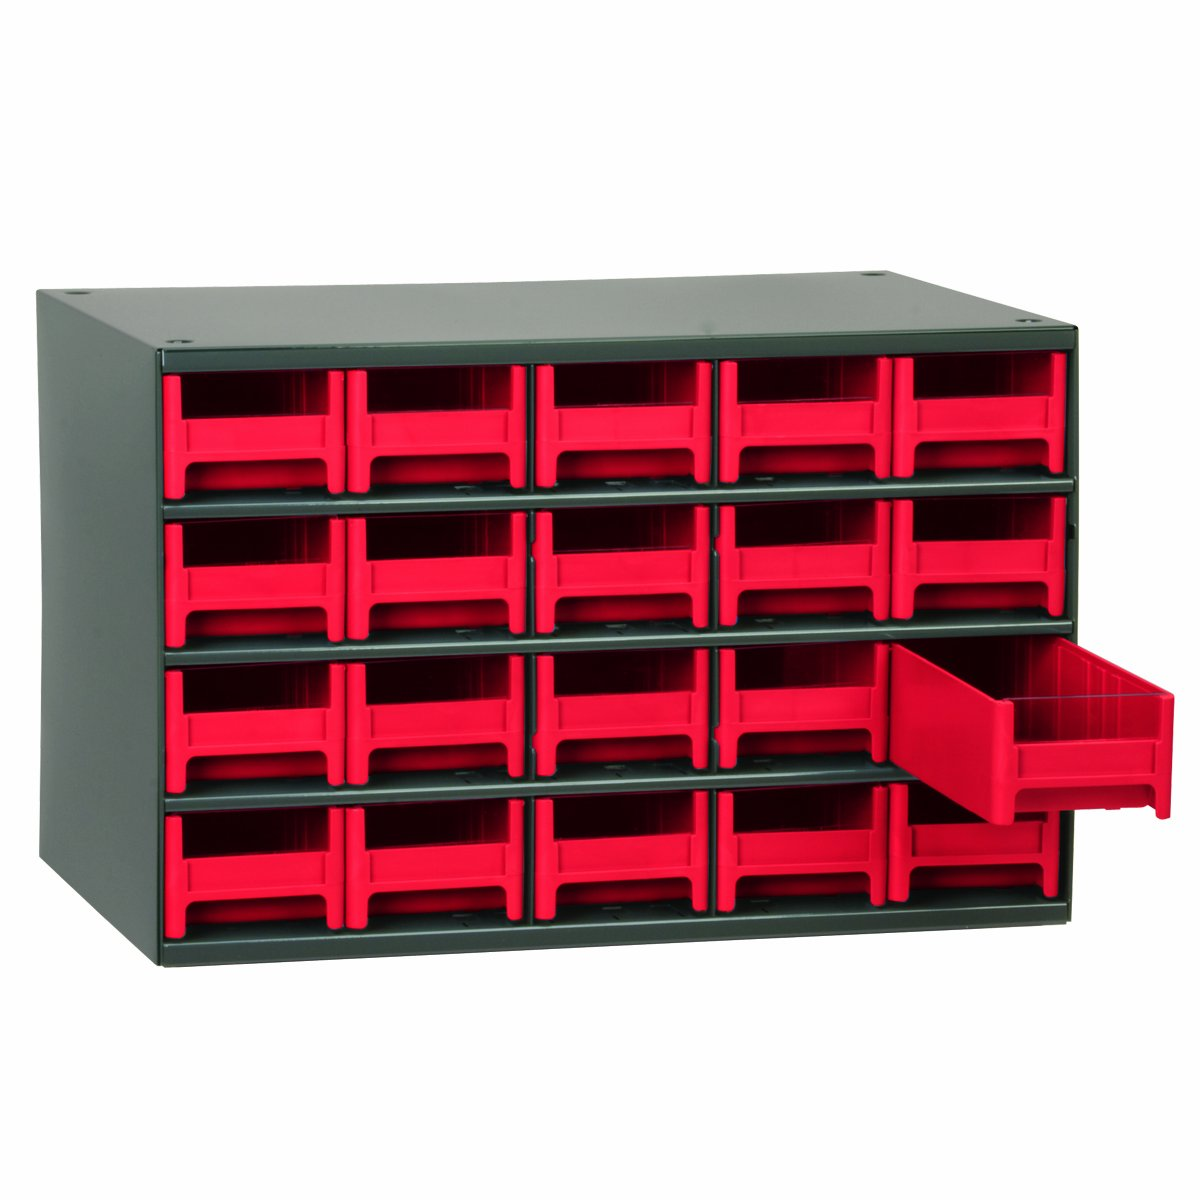 Akro-Mils 19320 17-Inch W by 11-Inch H by 11-Inch D 20 Drawer Steel Parts Storage Hardware and Craft Cabinet, Red Drawers by Akro-Mils